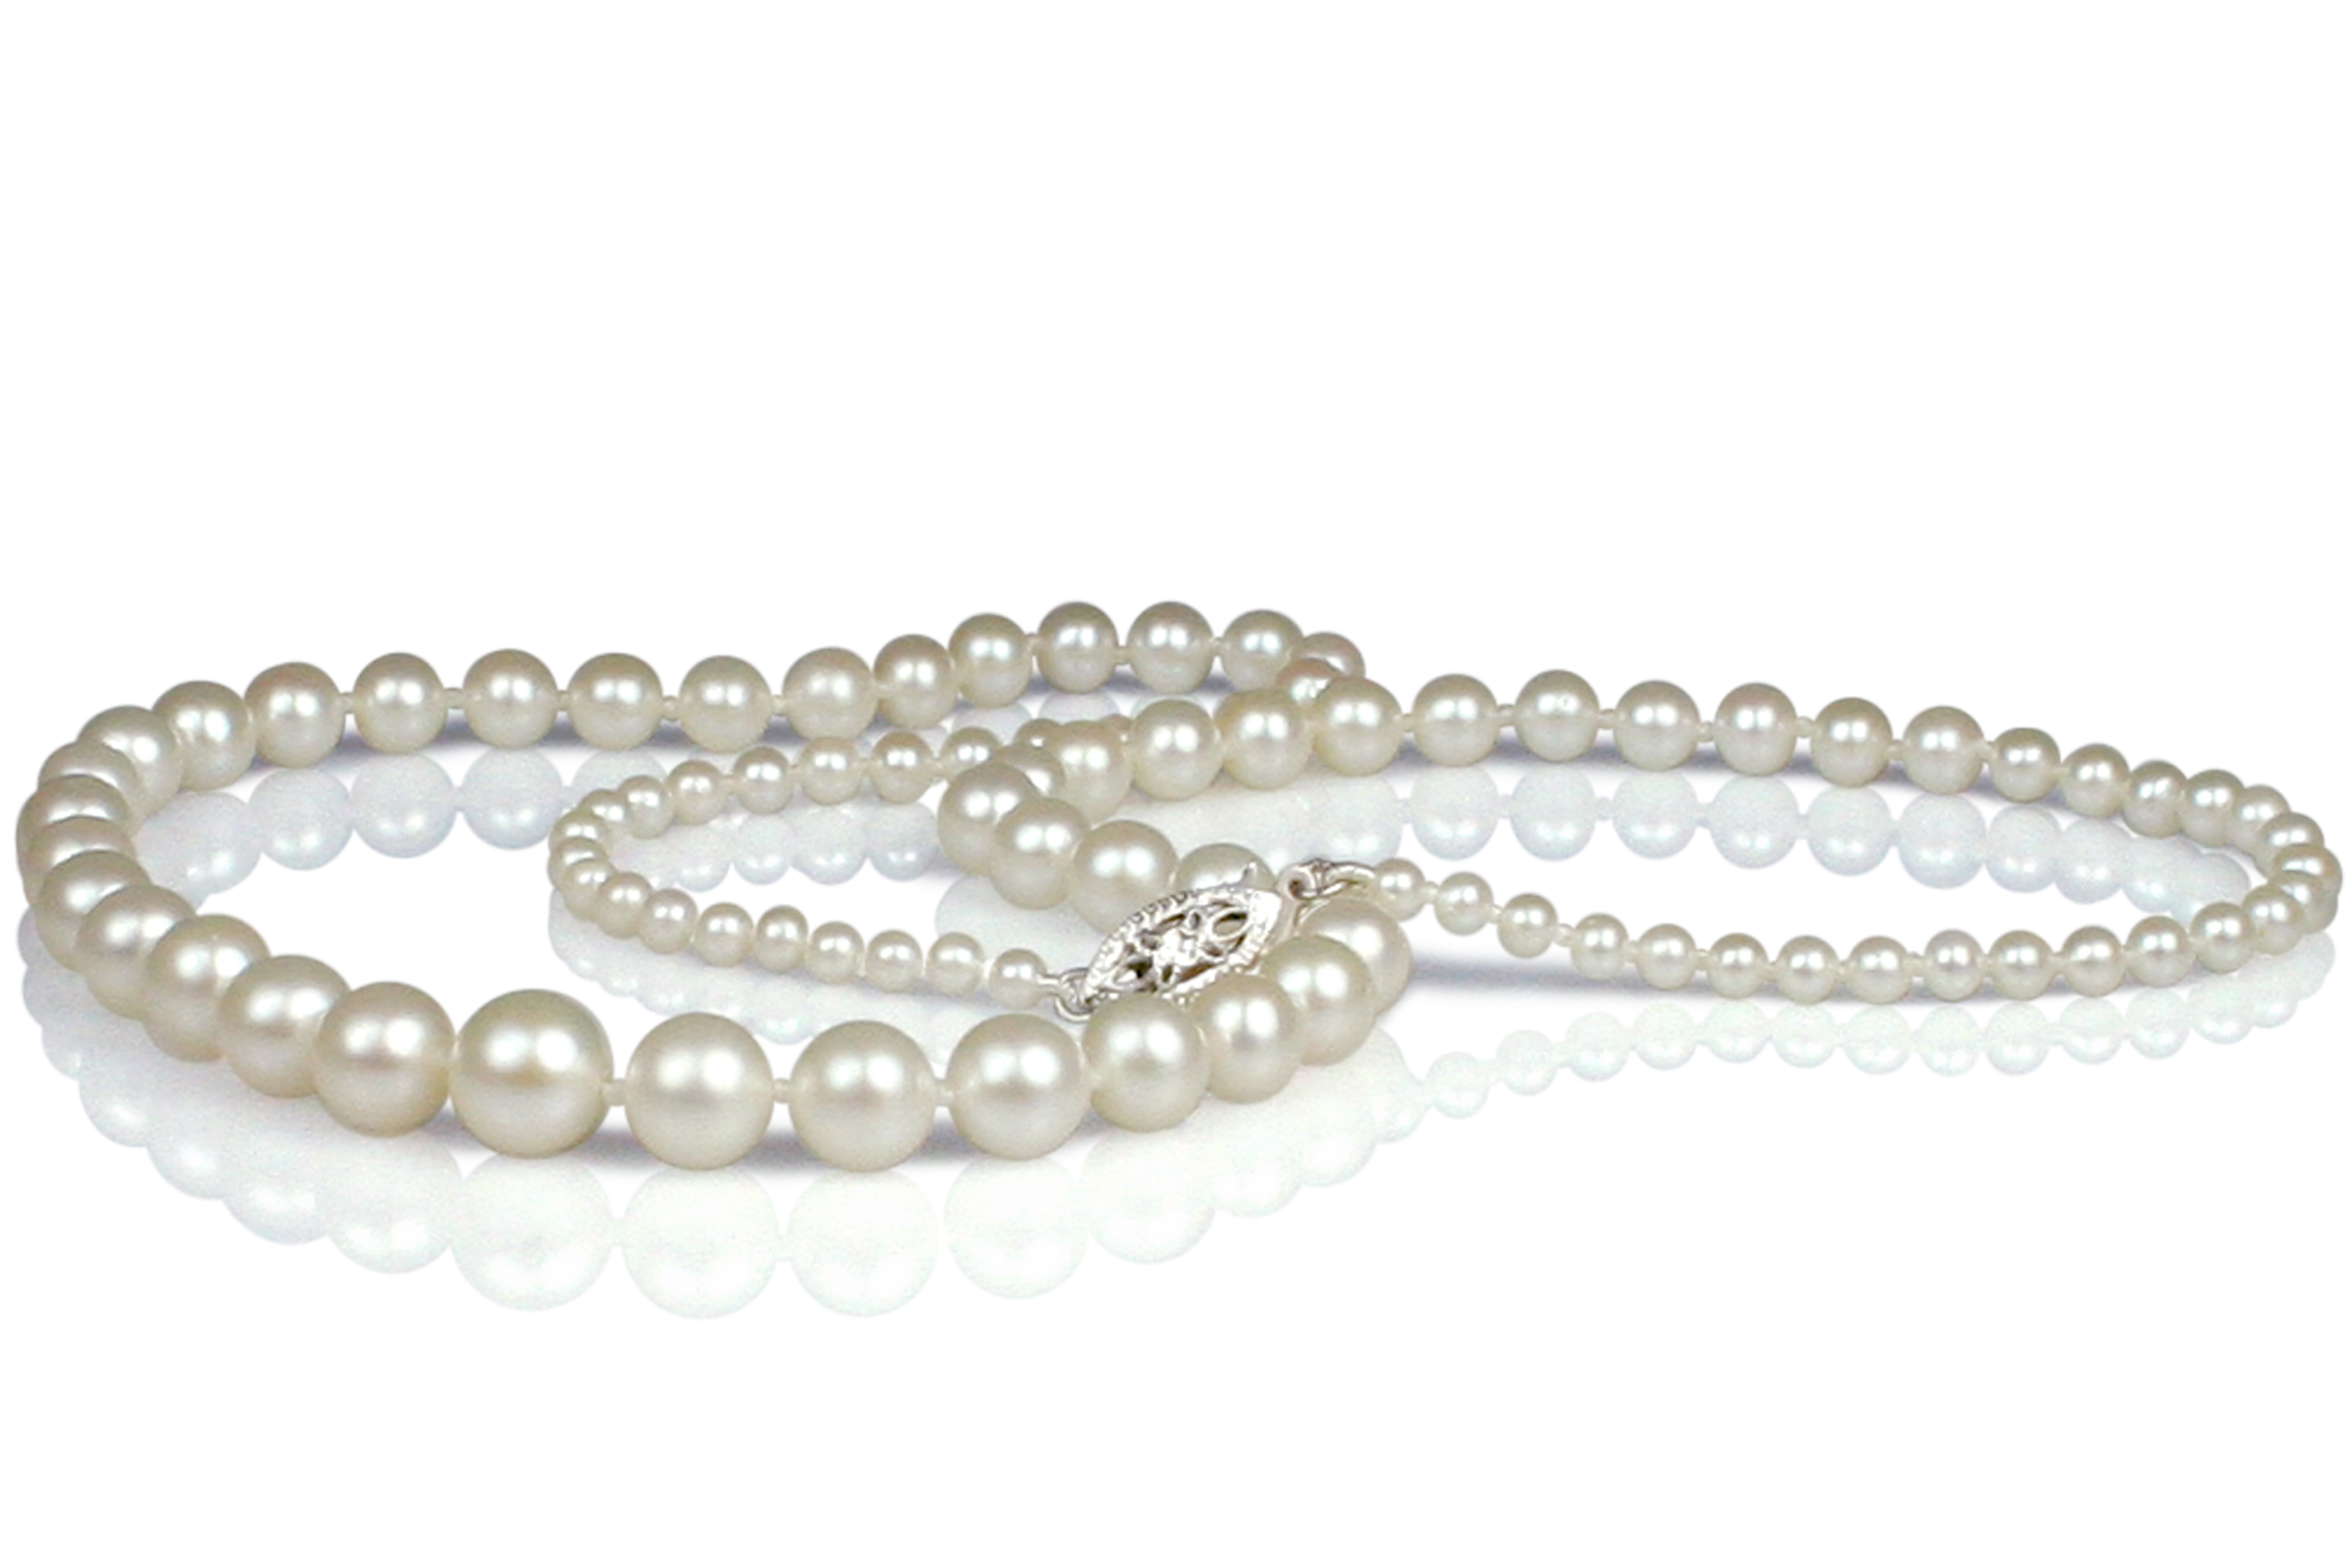 Graduated white akoya pearl necklace